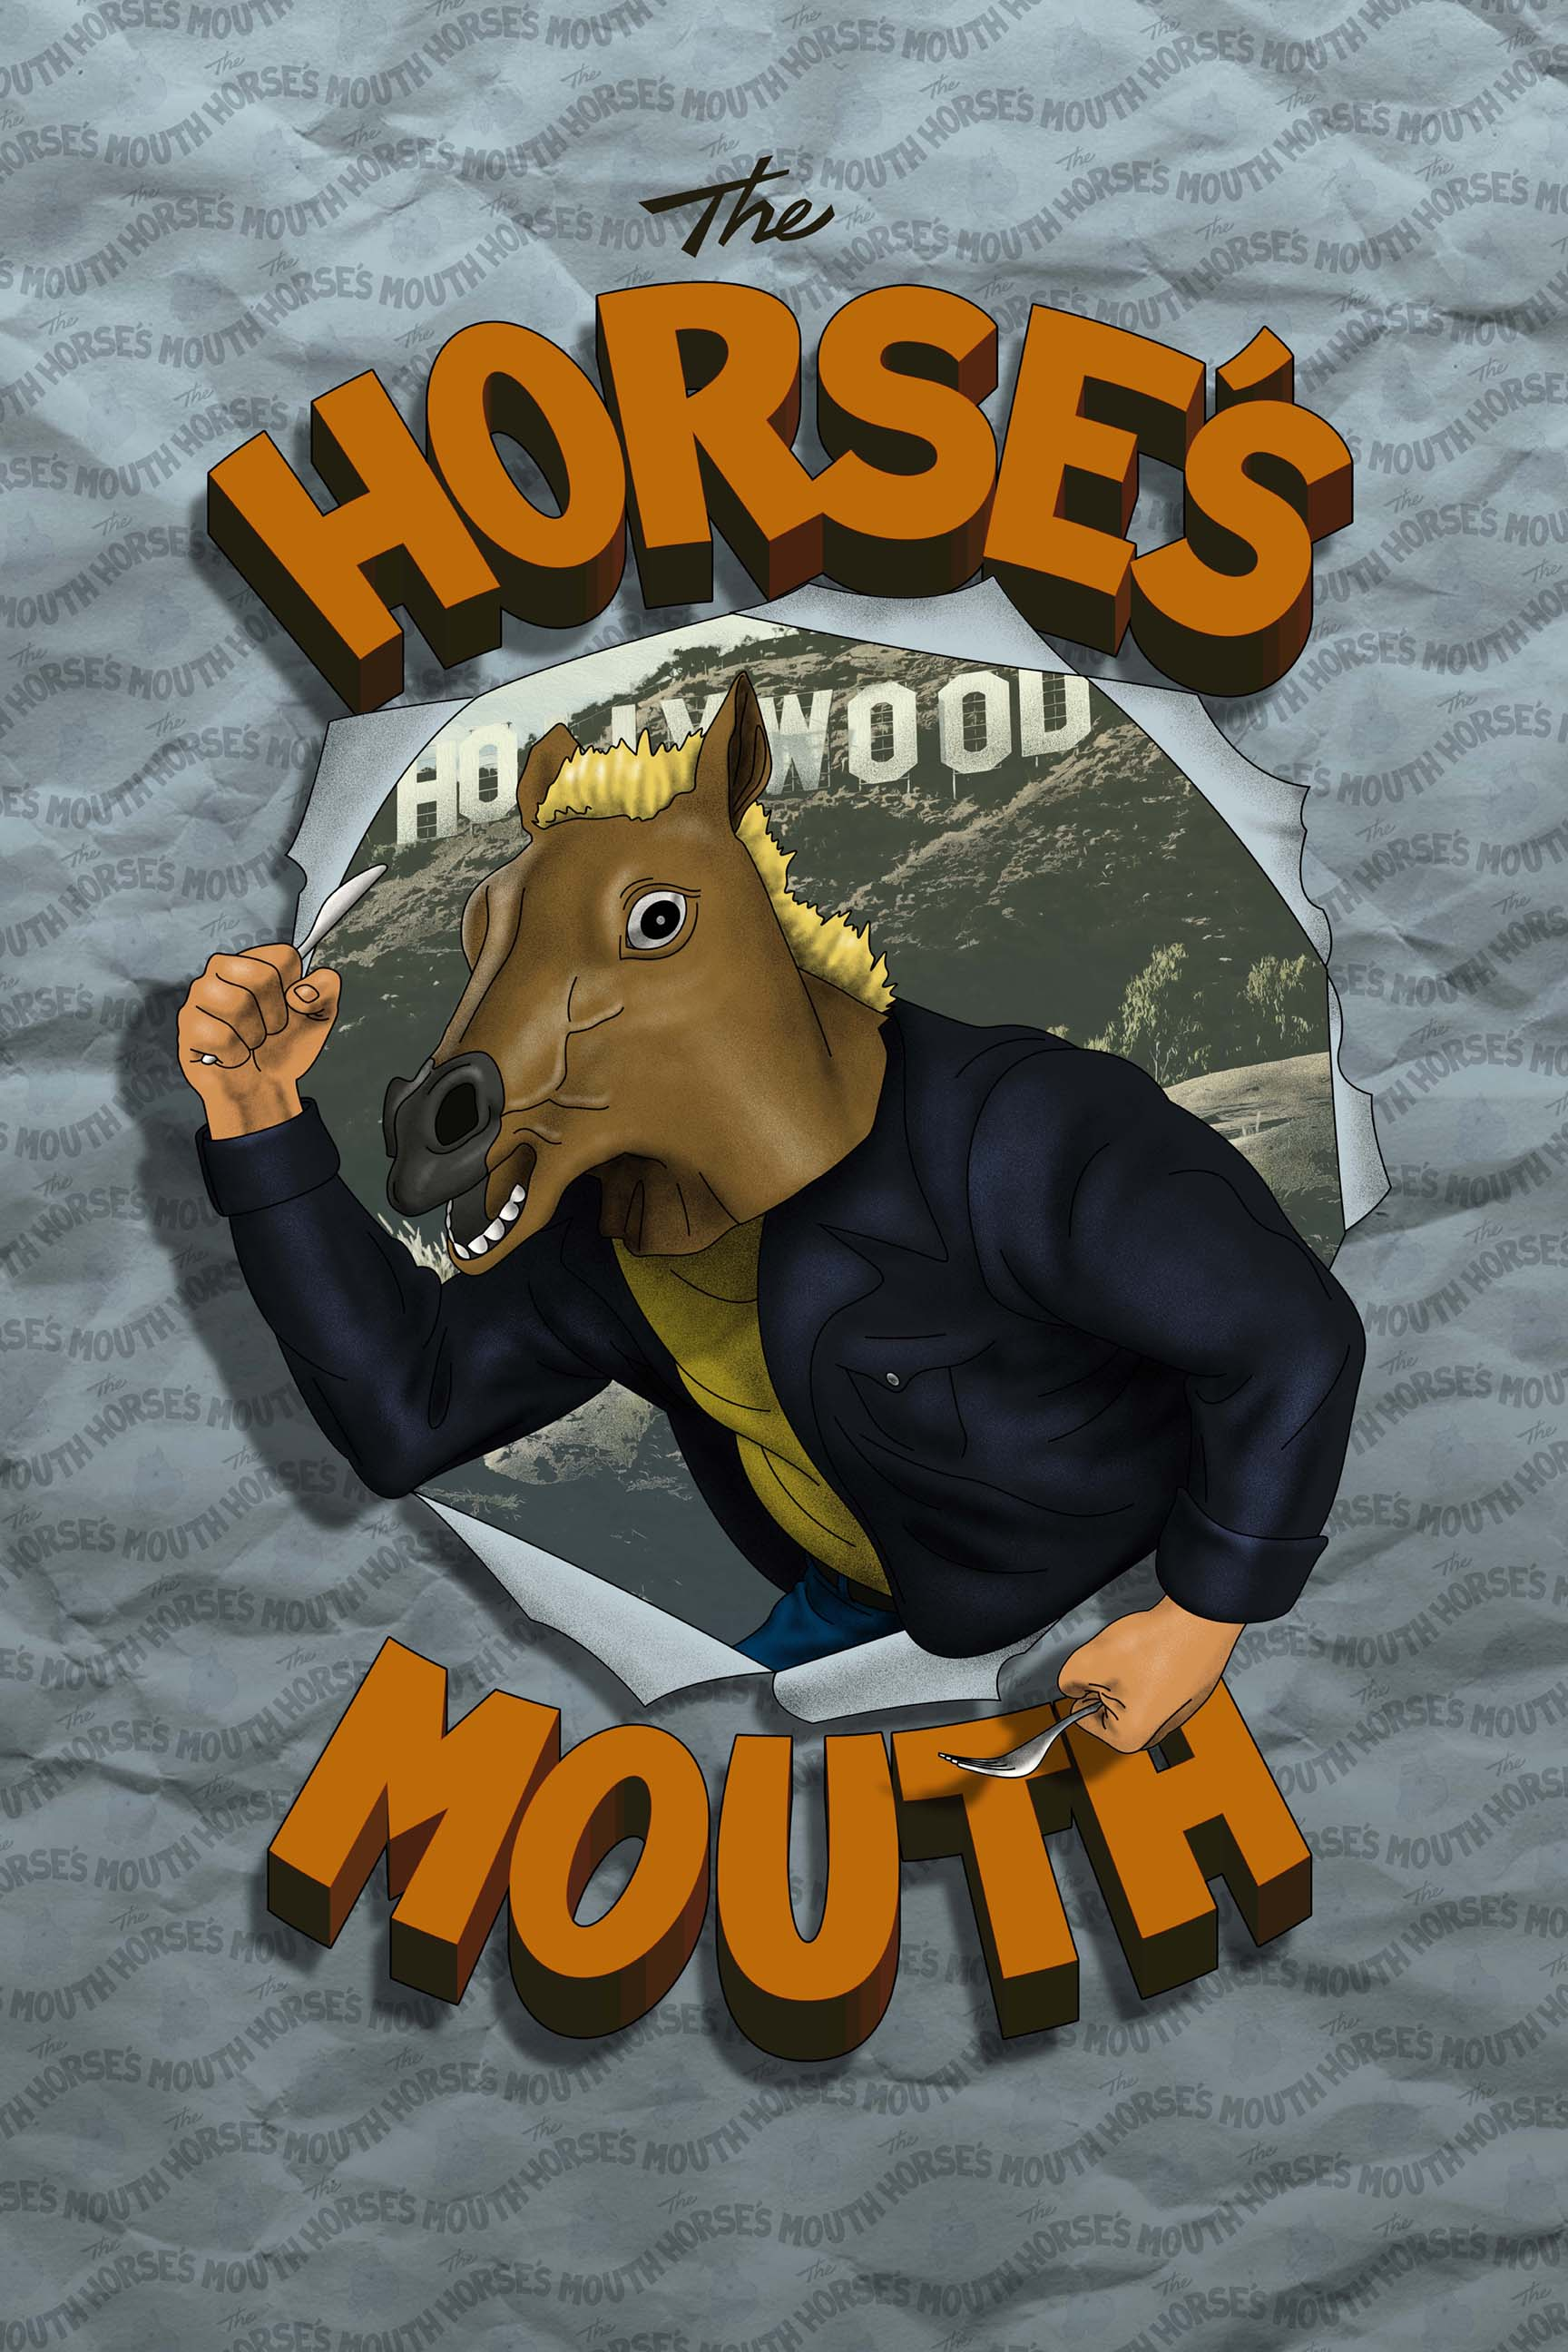 "THE HORSE'S MOUTH - OUT NOW - Fledgling food critic, Mike Postalakis, is writing a book about the Los Angeles food scene, and why he's at it he is filming his own food show. The problem is, Mike thinks he needs to wear a horse mask to hide his identity from the people serving him food. The Horse's Mouth is a show with in a show and a show about a show. Mike's girlfriend Eloise becomes dissatisfied with Mike selfishness and obsession over his show. While Mike goes further down the rabbit-hole, and even begins seeing an unknown man in an elephant's mask, he doesn't even notice Eloise drifting away.* * *Written & Created By Mike Postalakis & James GreerDirected By Djay Brawner & Mike PostalakisProduced By Gabriel Younes, May Iosotaluno, DJay Brawner, Mike Postalakis, and Nicole SwedlowOriginal Score By Mark YaegerExecutive Producer DJay BrawnerDirector of Photography Kyle FallonEdited By Chris ""Fleck"" Hernandez* * *"